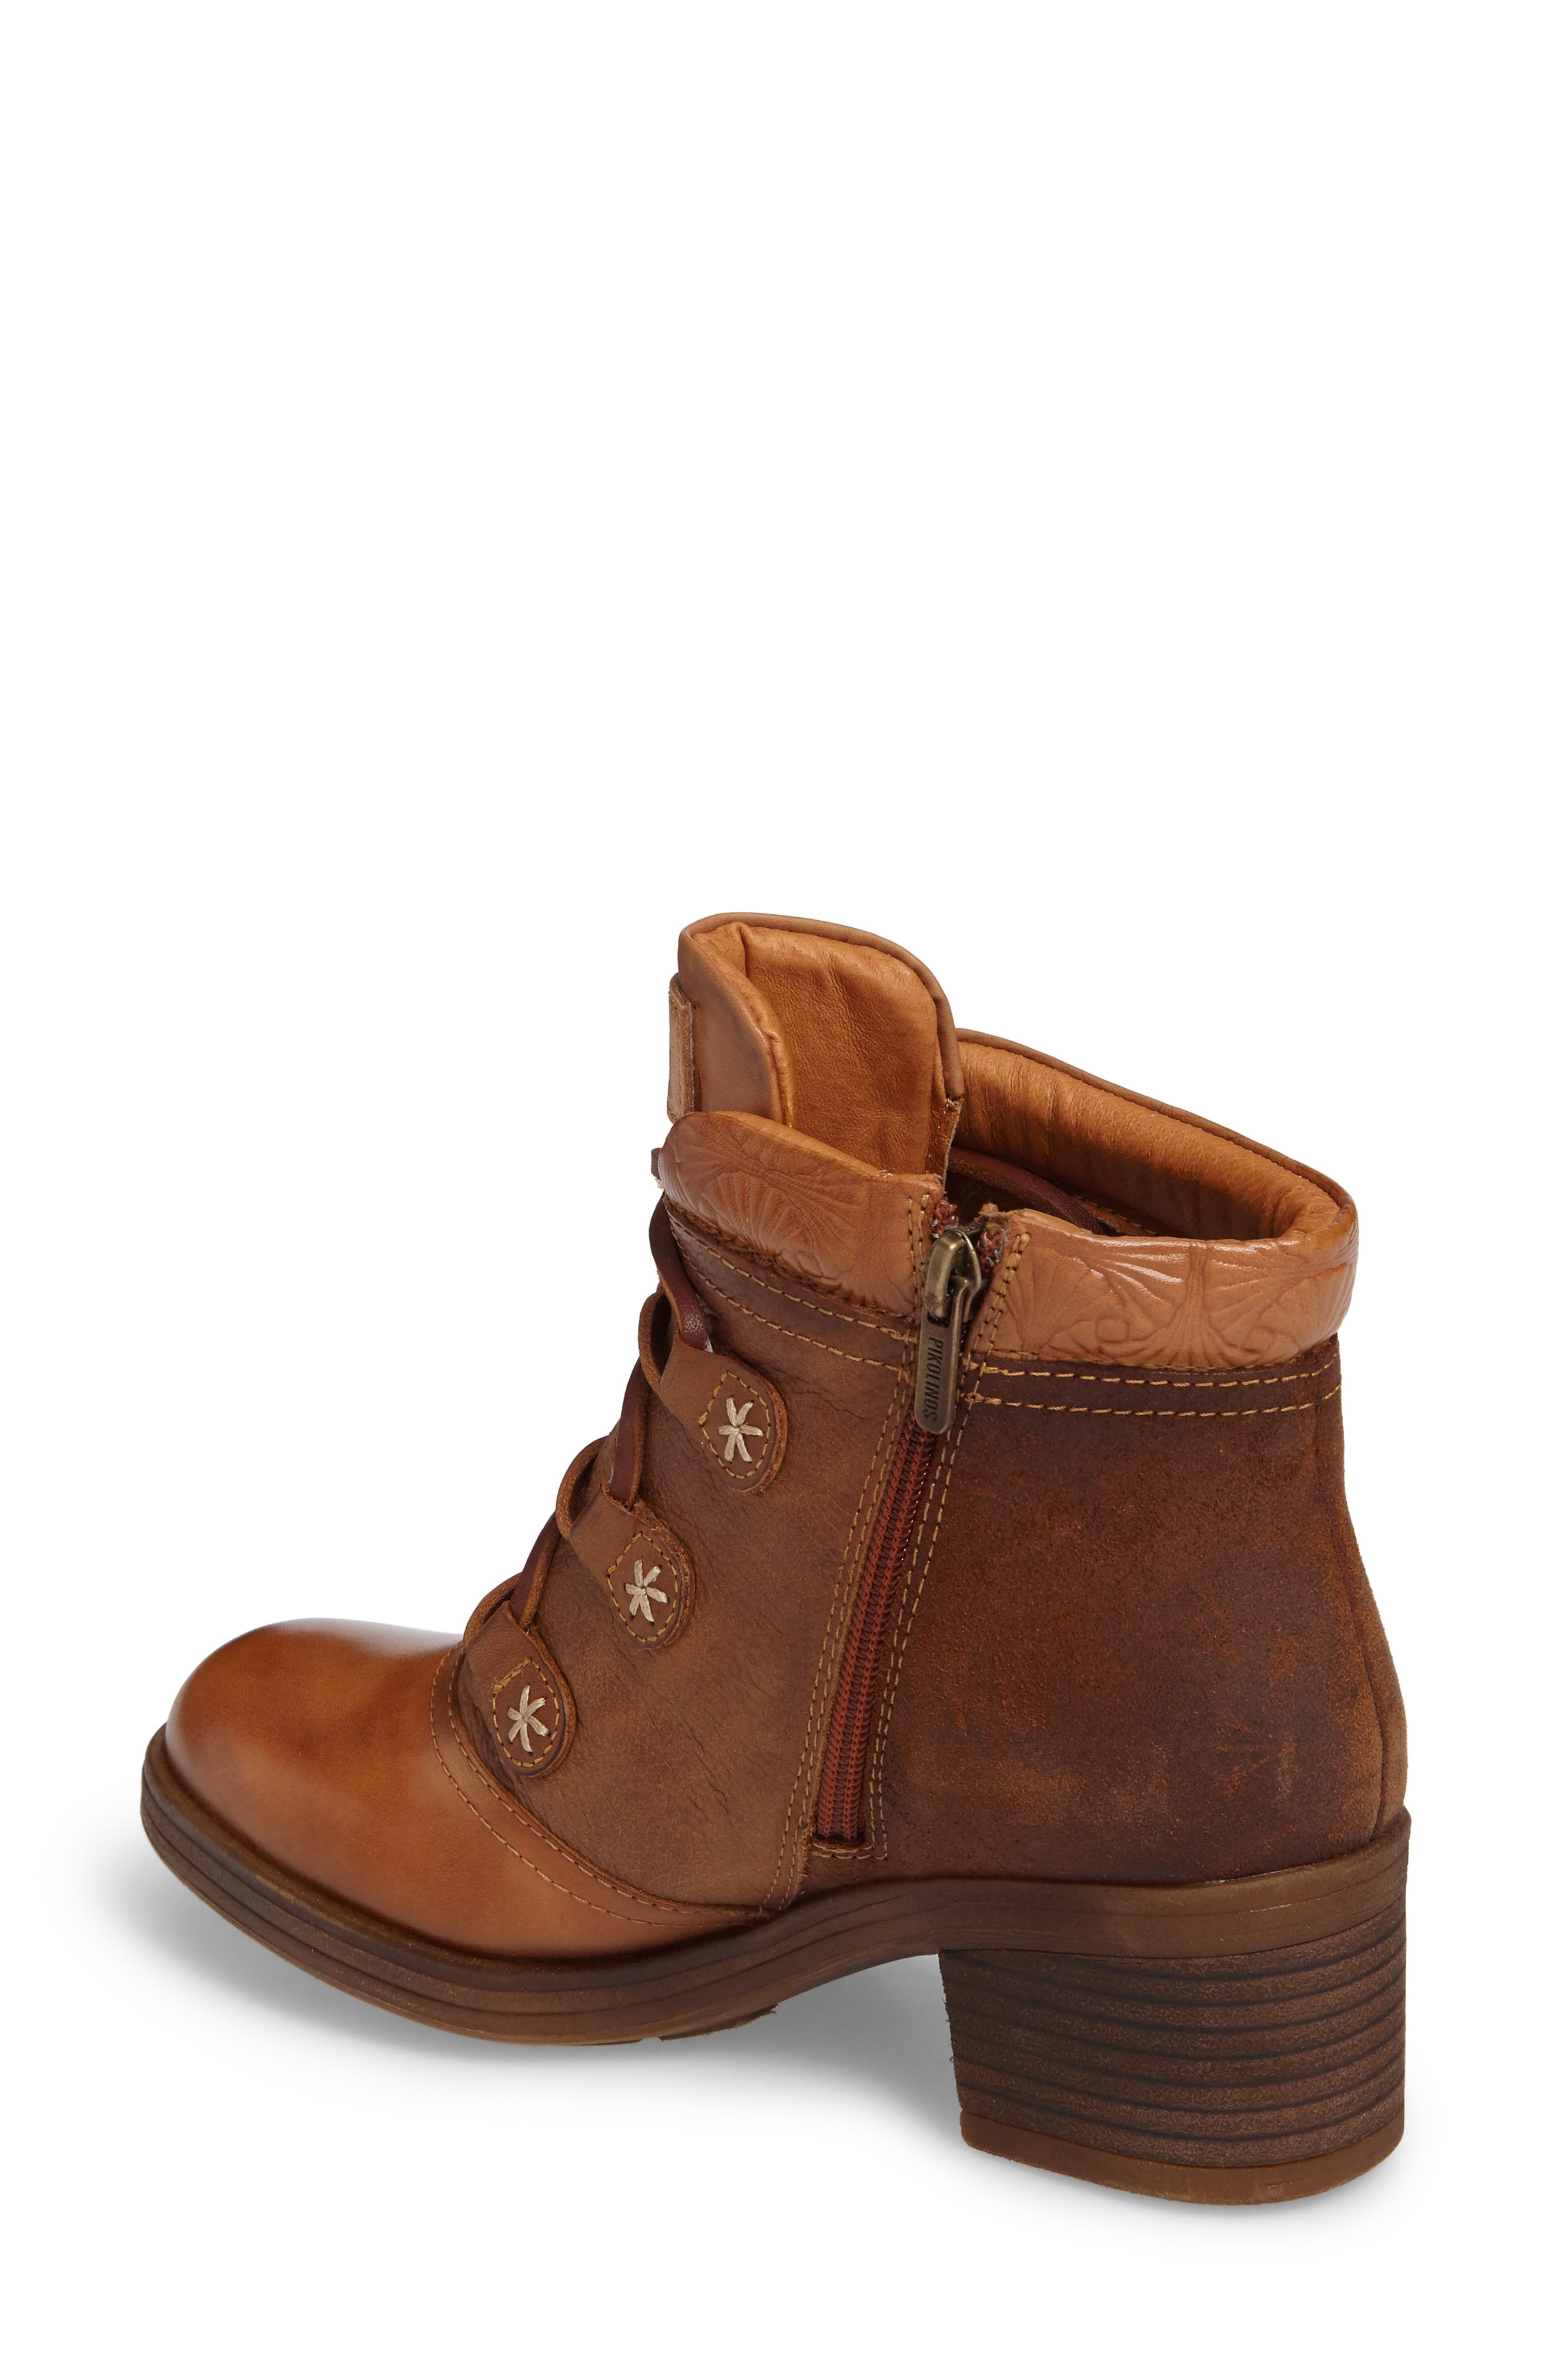 Lyon Lace-Up Boot,                             Alternate thumbnail 2, color,                             Brandy Leather